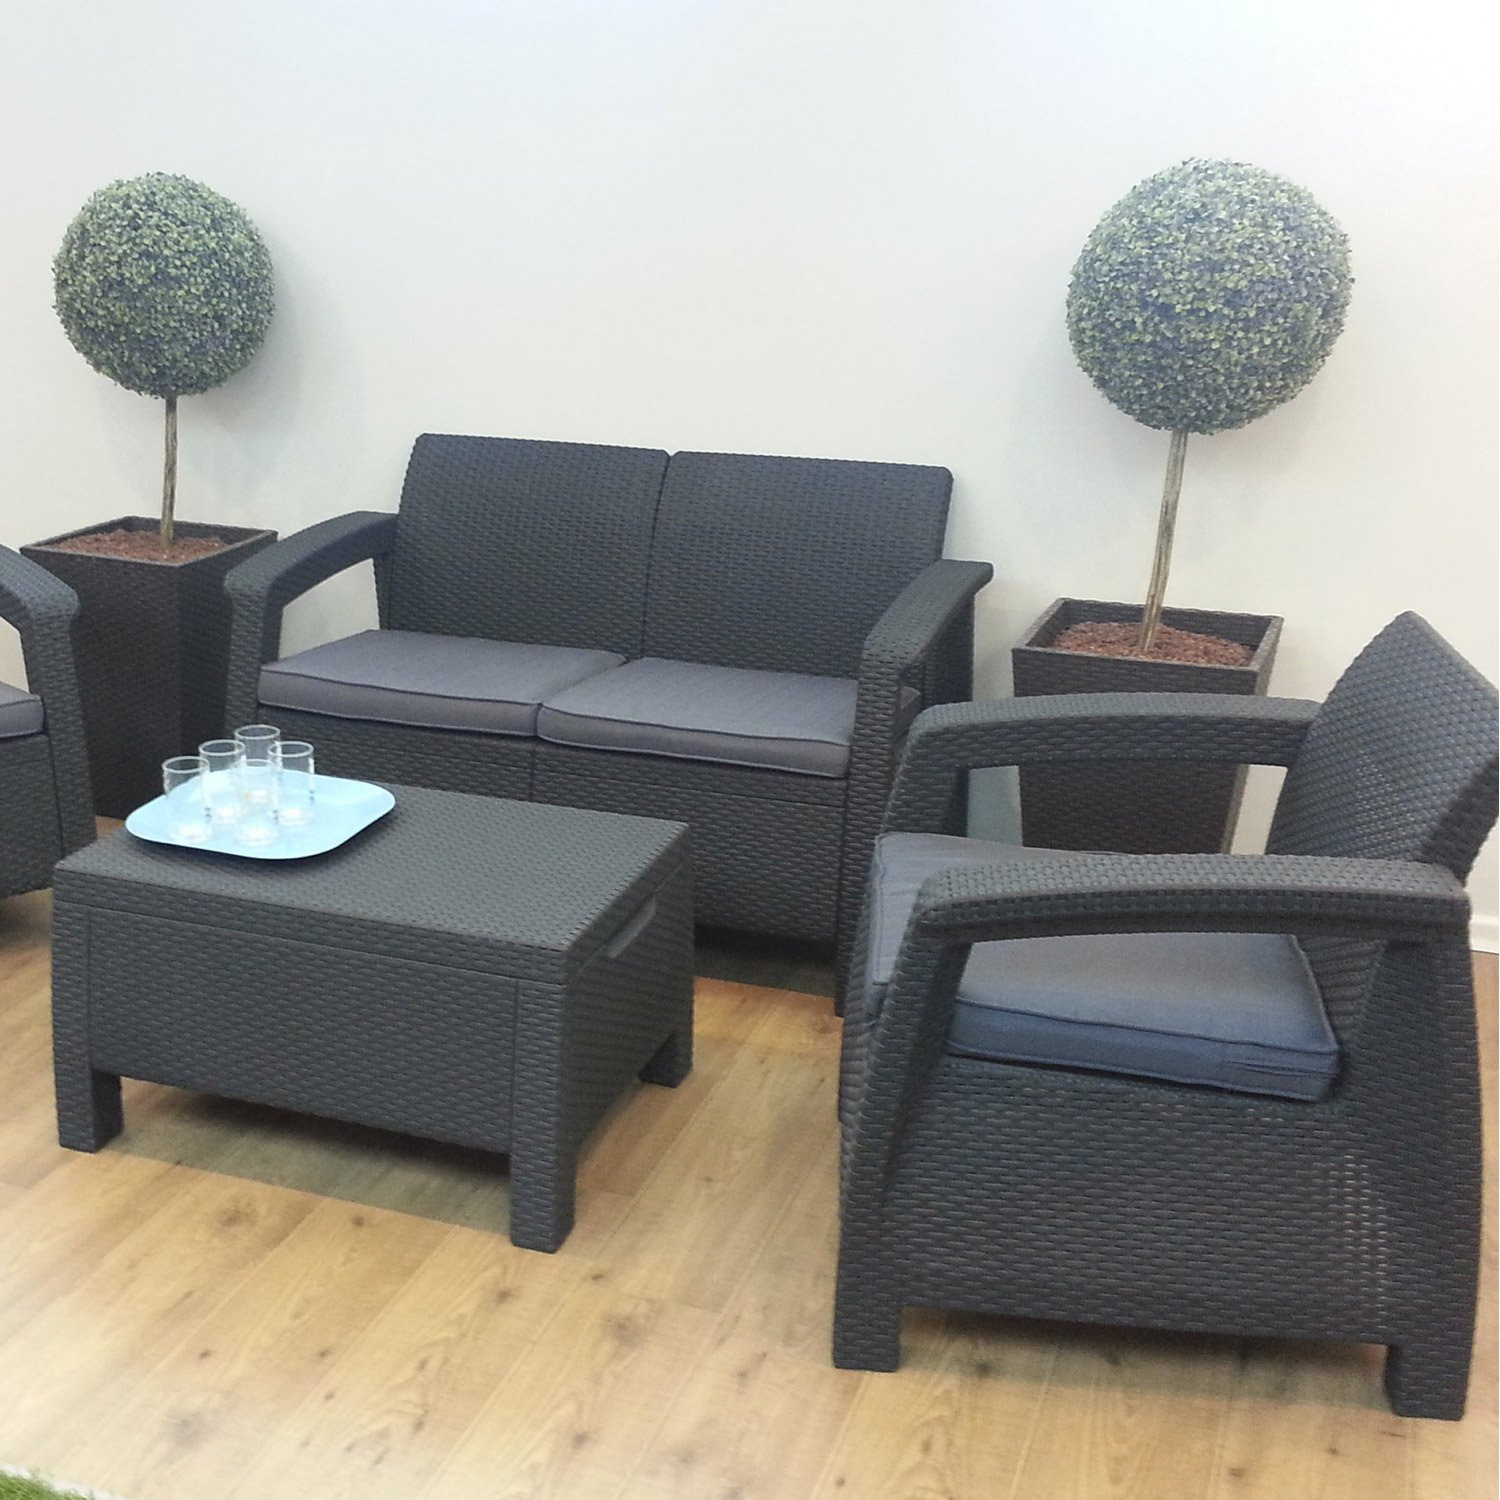 Salon de jardin modulable nevada graphite allibert - Jardin piscine ...